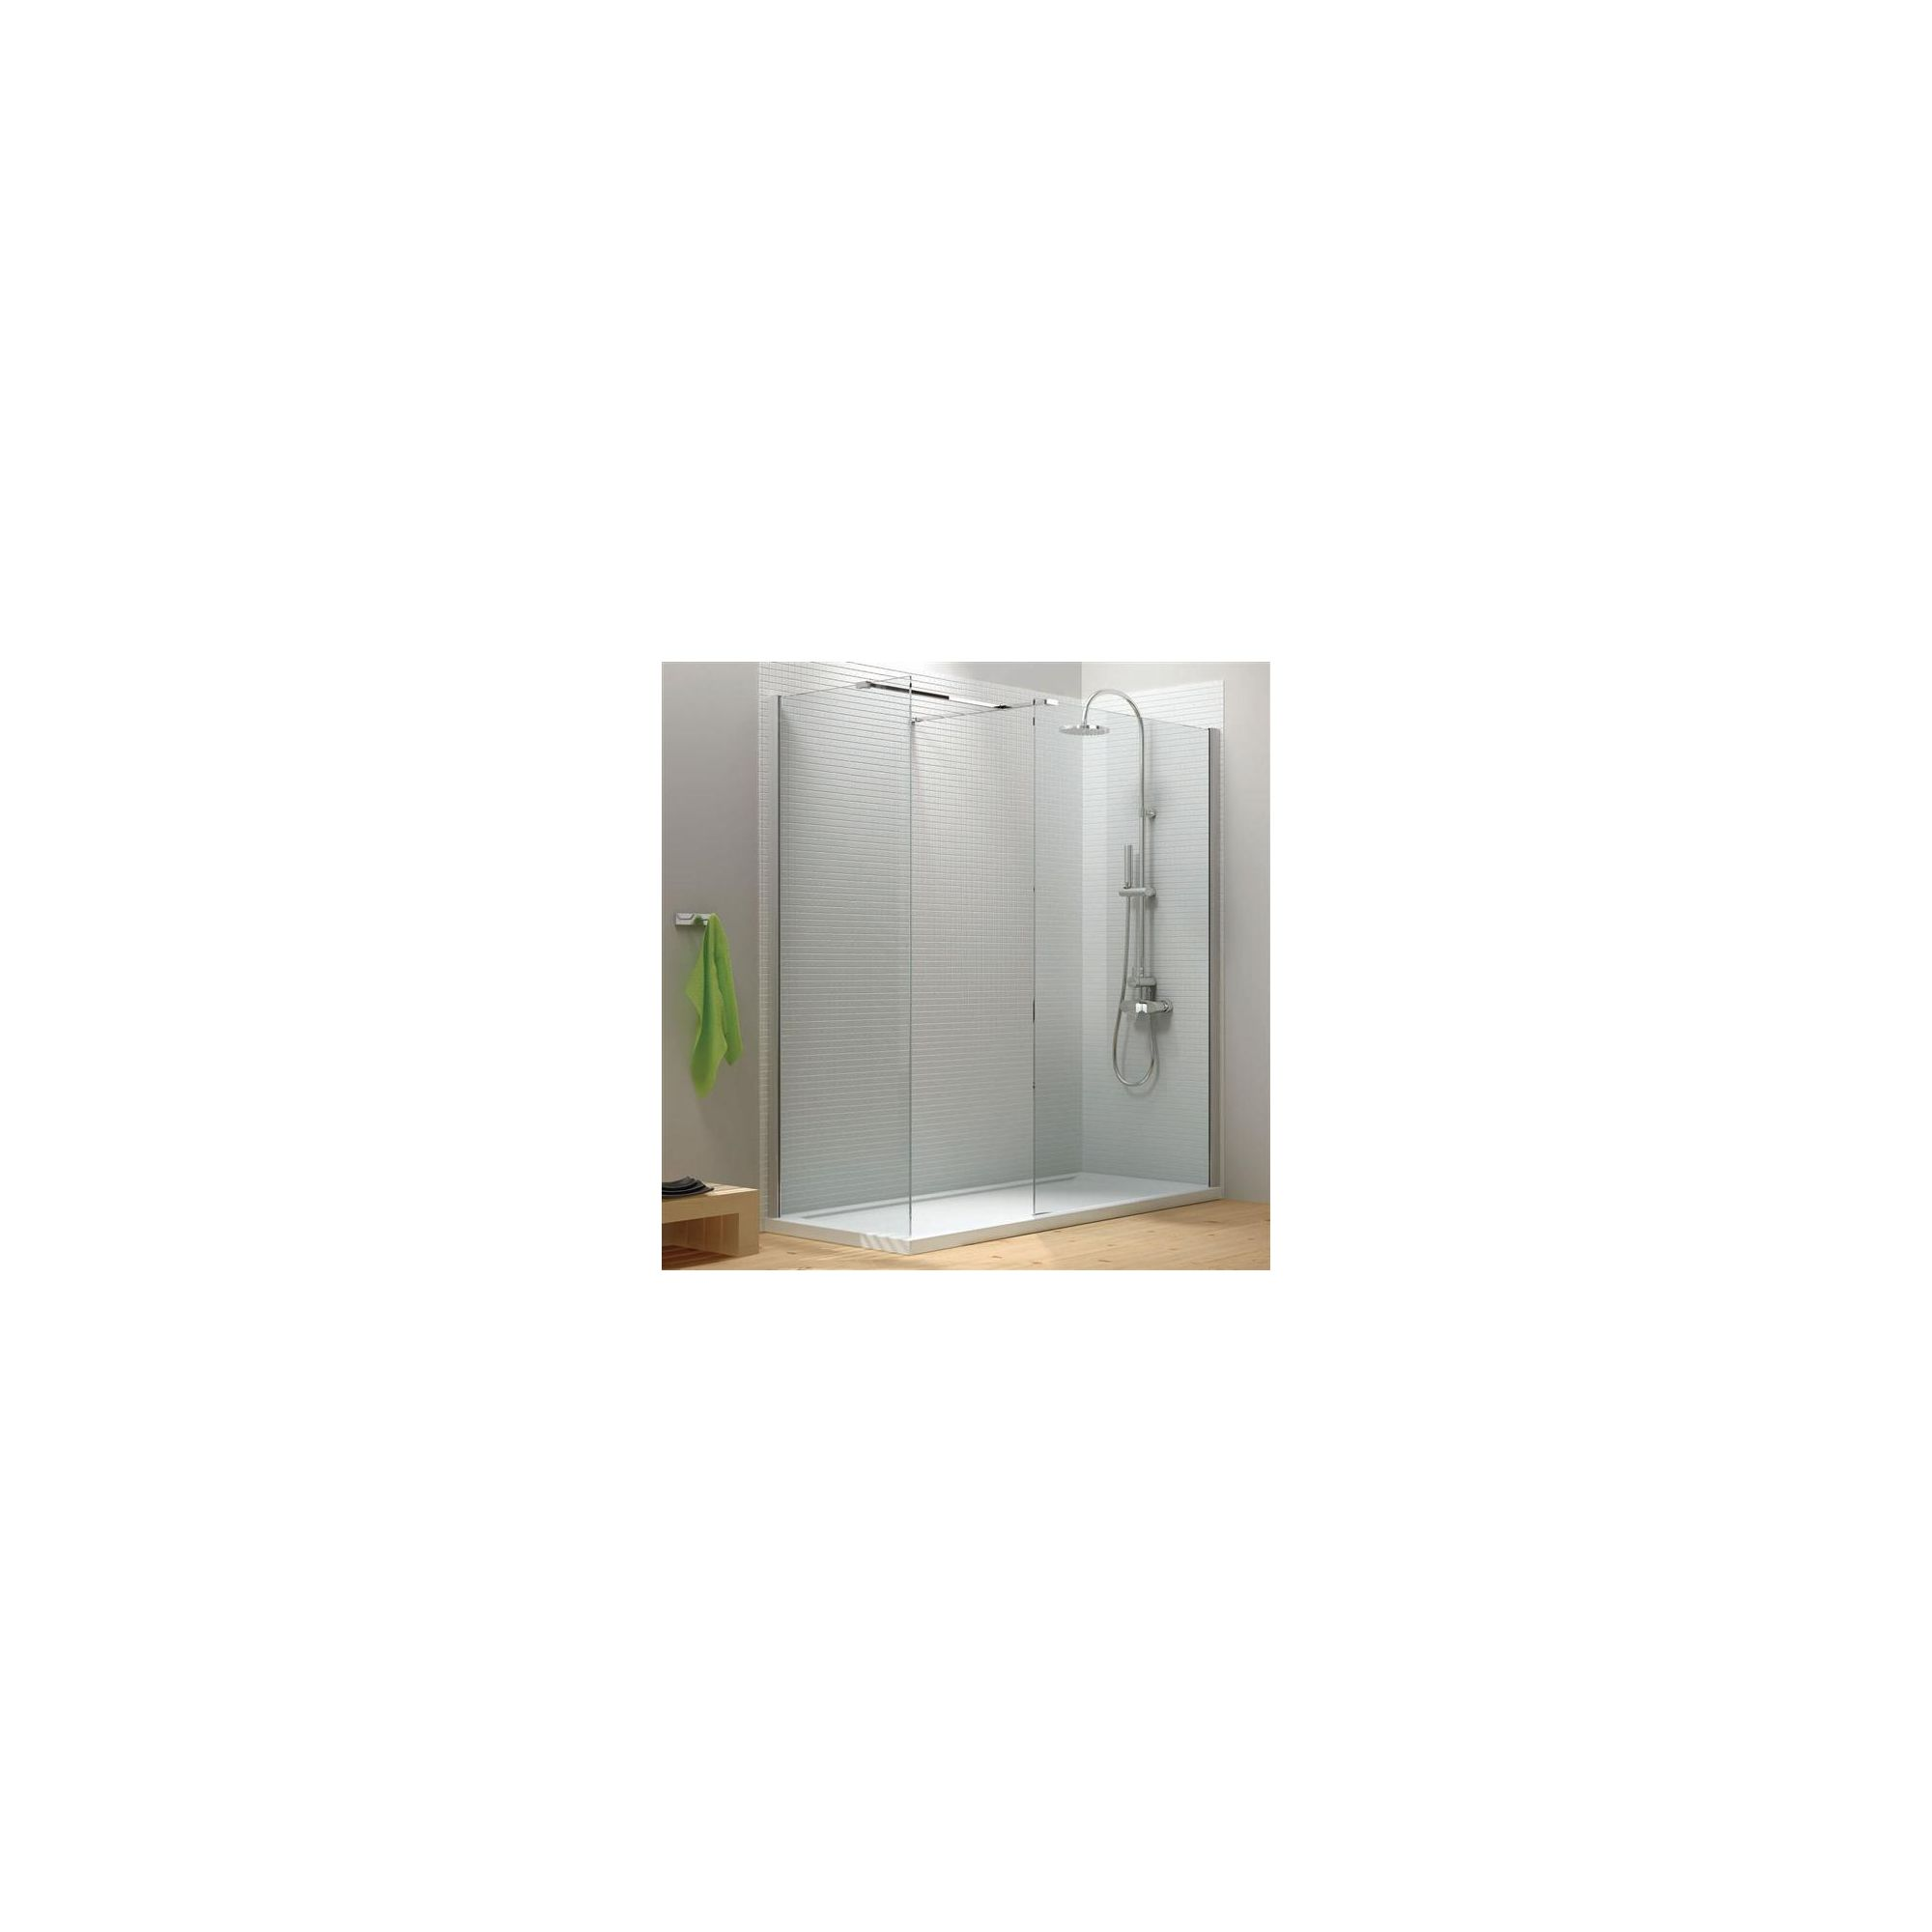 Merlyn Vivid Eight Walk-In Shower Enclosure, 1400mm x 900mm, Low Profile Tray, 8mm Glass at Tesco Direct